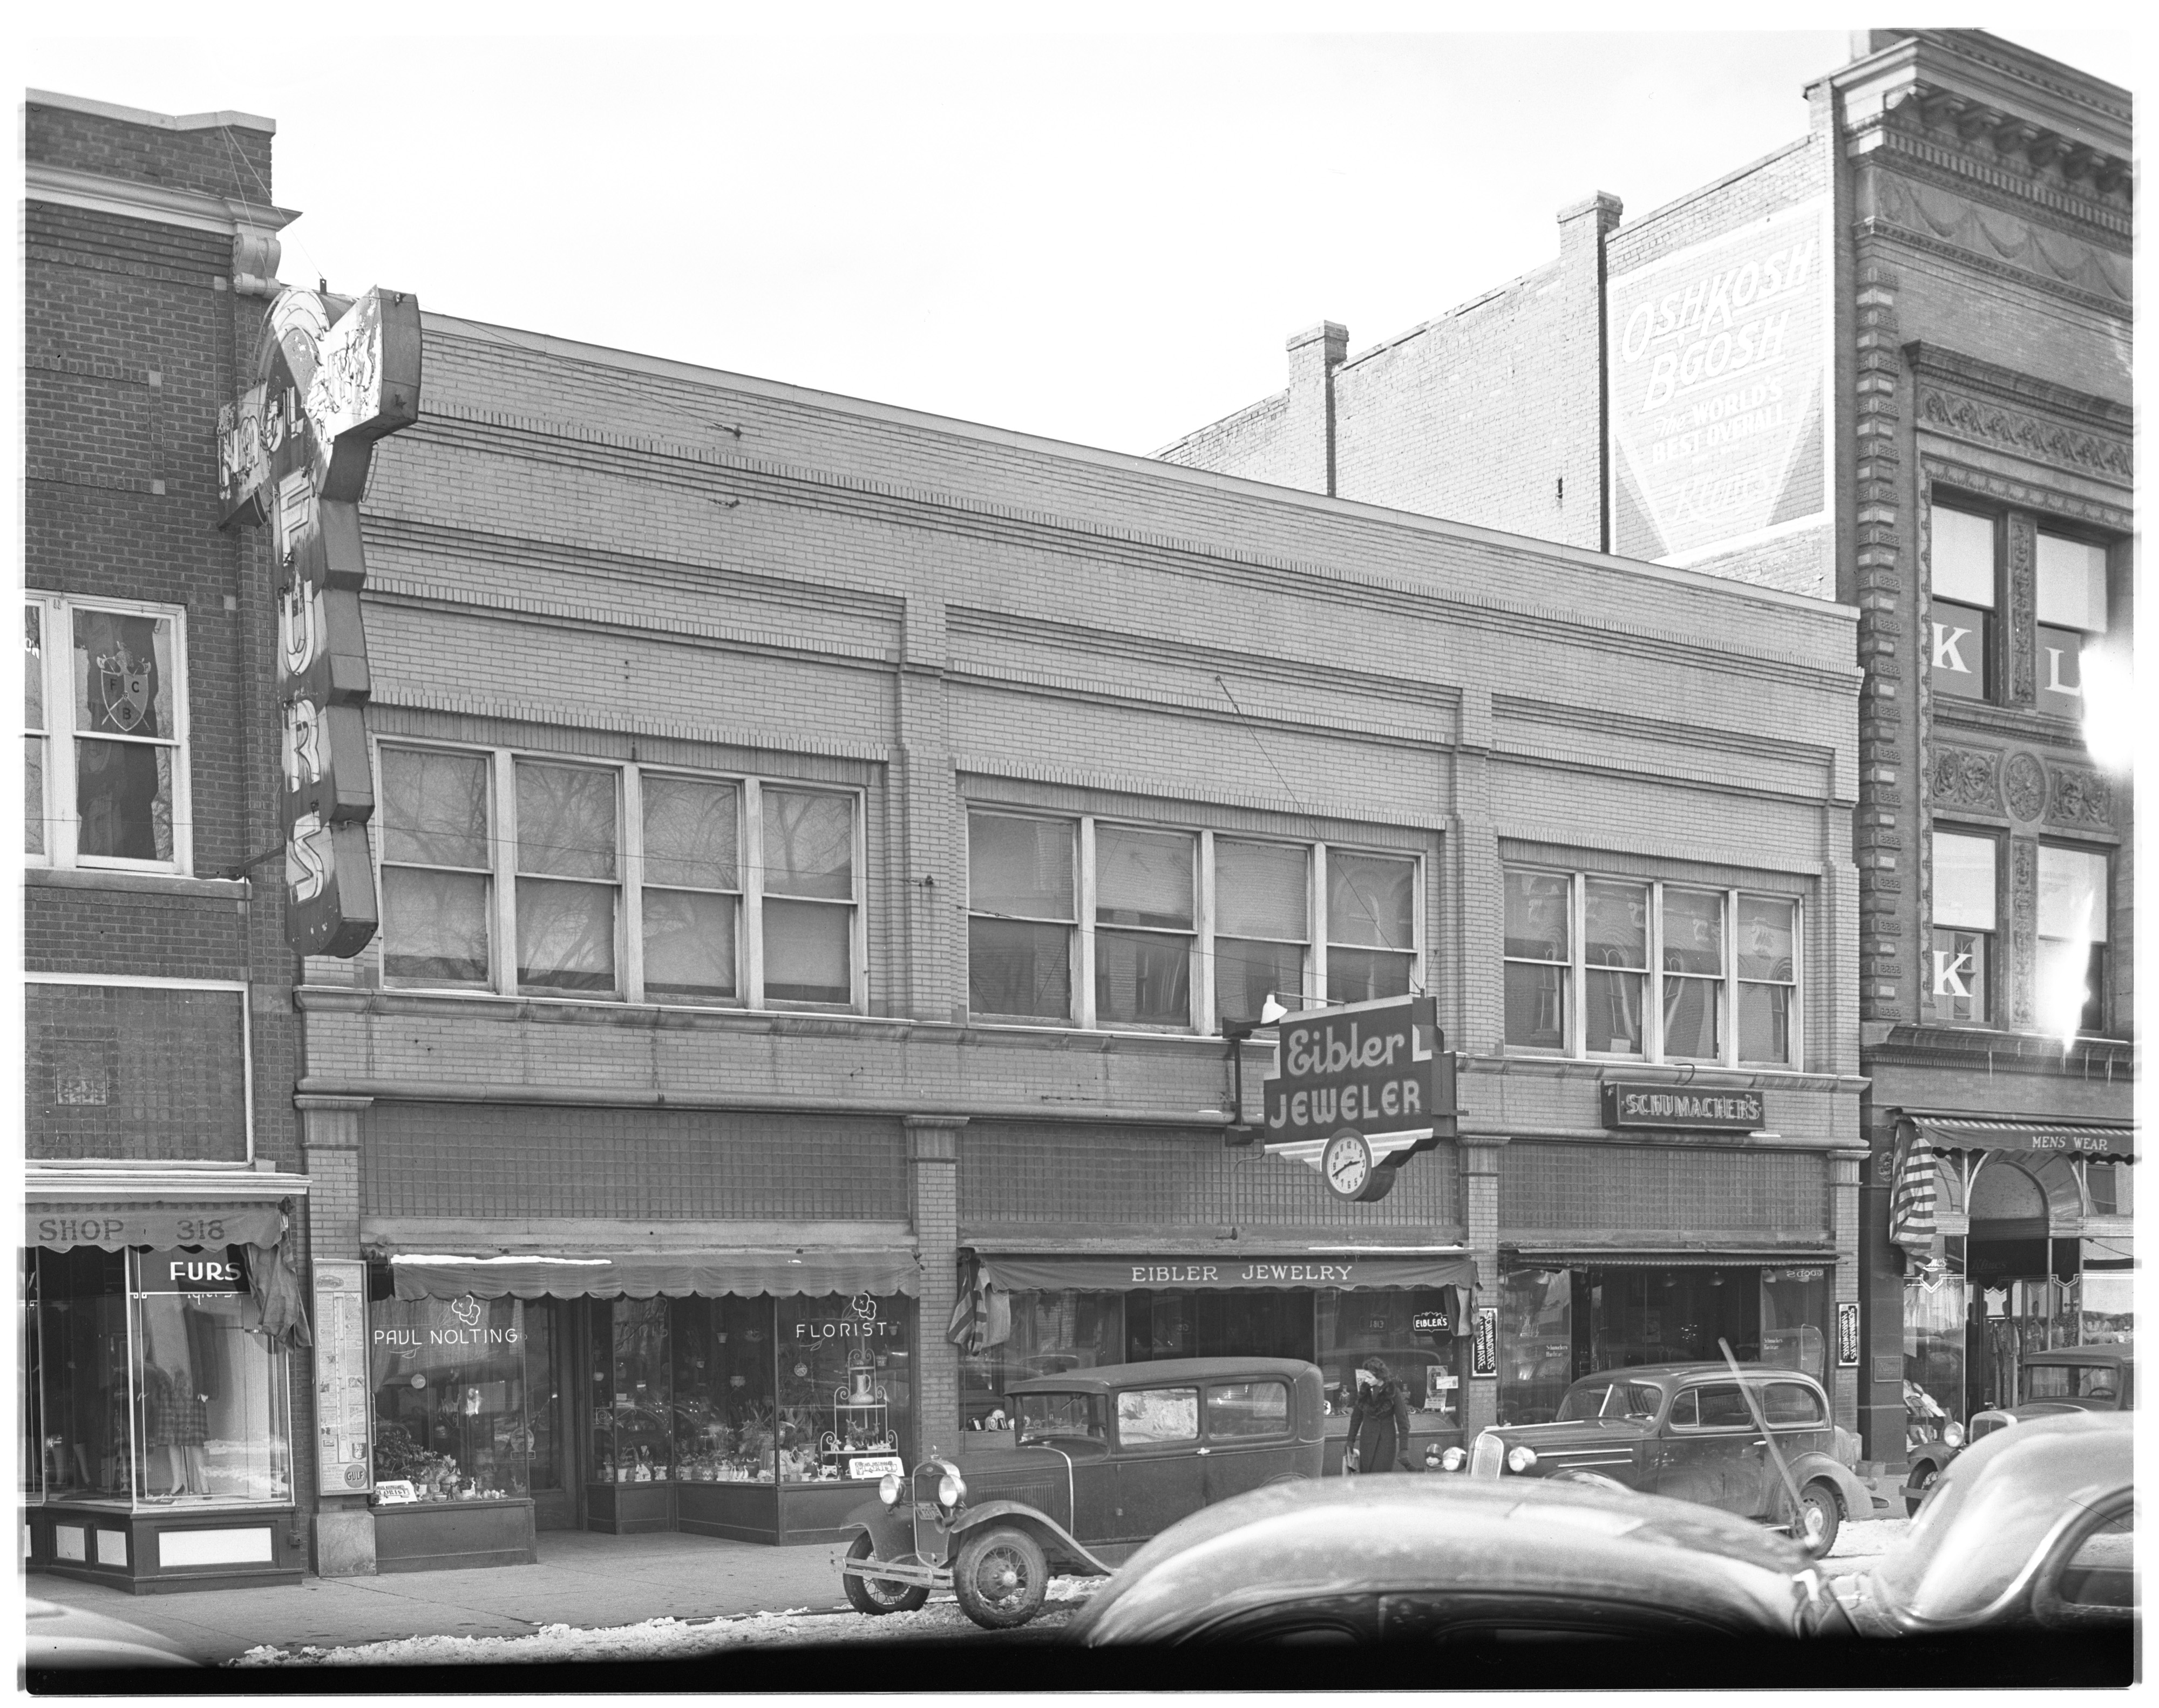 Schumacher Hardware, Eibler Jeweler, and Paul Nolting Florist,  S Main St, February 1939 image